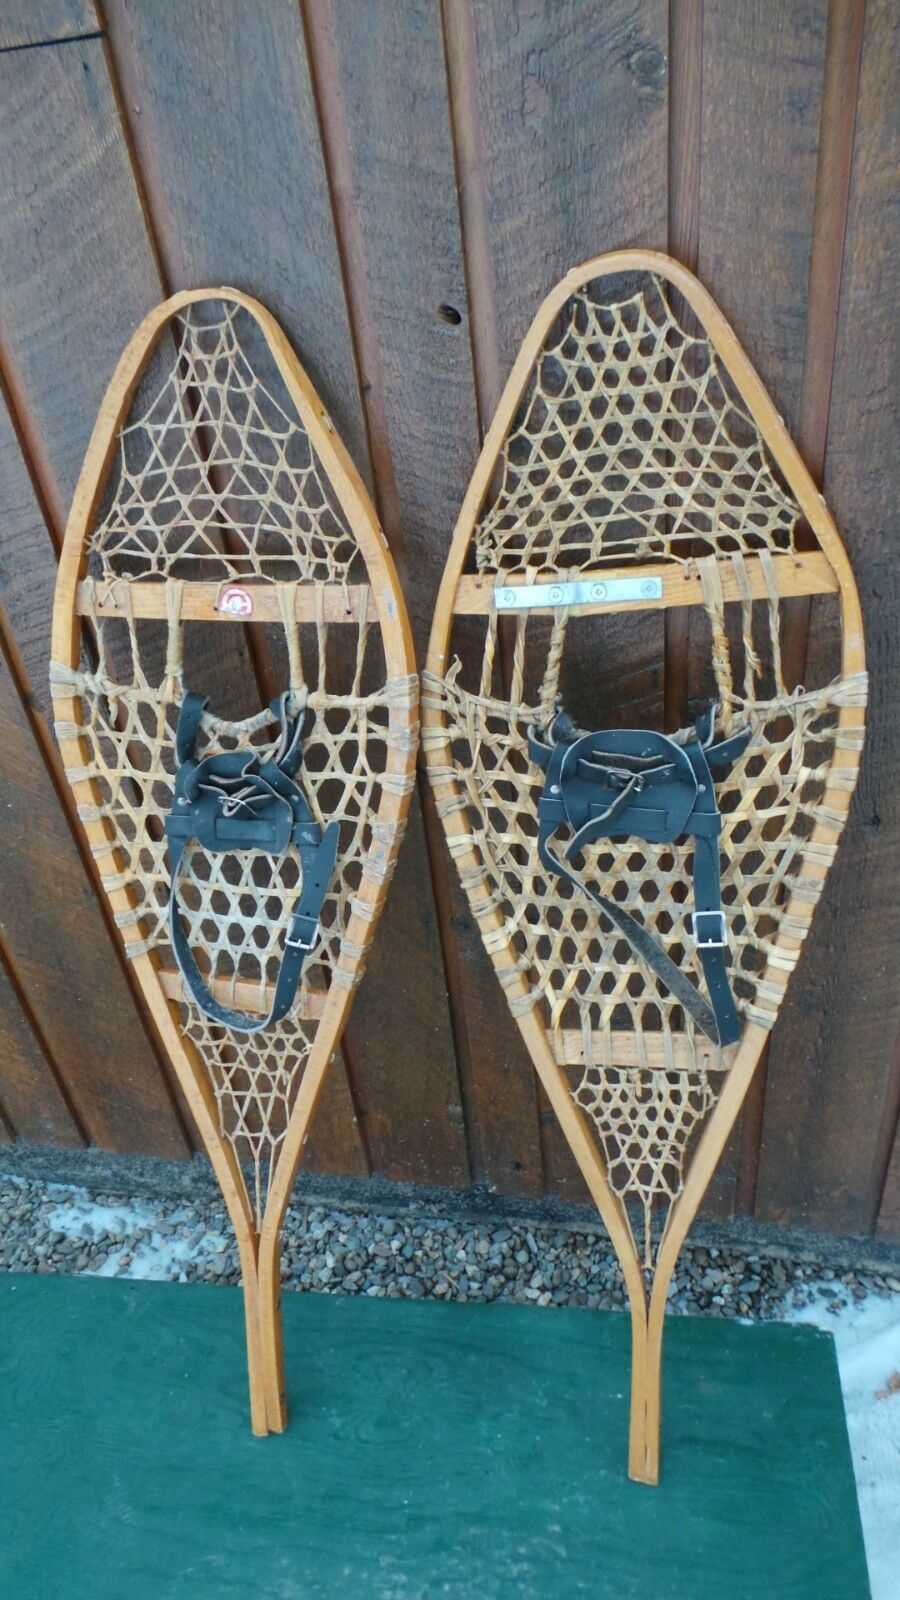 GREAT OLD Snowshoes  43  long x 13  wide   Ready To Hang for Decoration  with 60% off discount